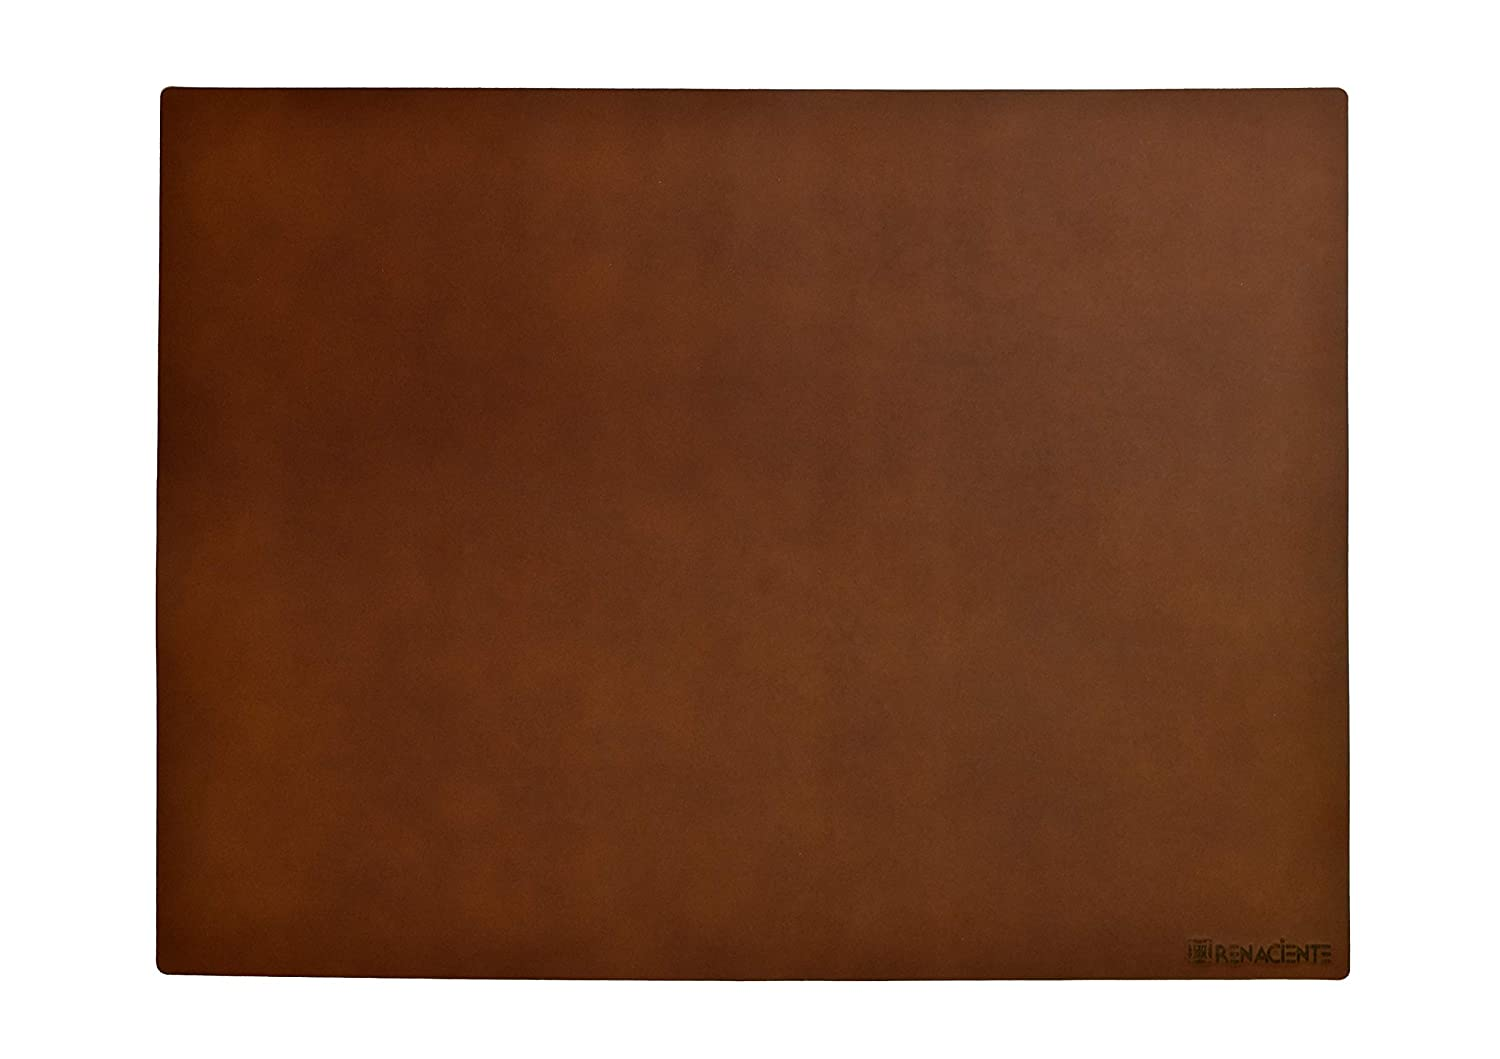 RENACIENTE Genuine Leather Desk Writing Mat (24x16 in.) Natural Vegetable Tan, Top Grain Leather, Smooth Natural Surface. Made in Ecuador (Hazelnut Brown)